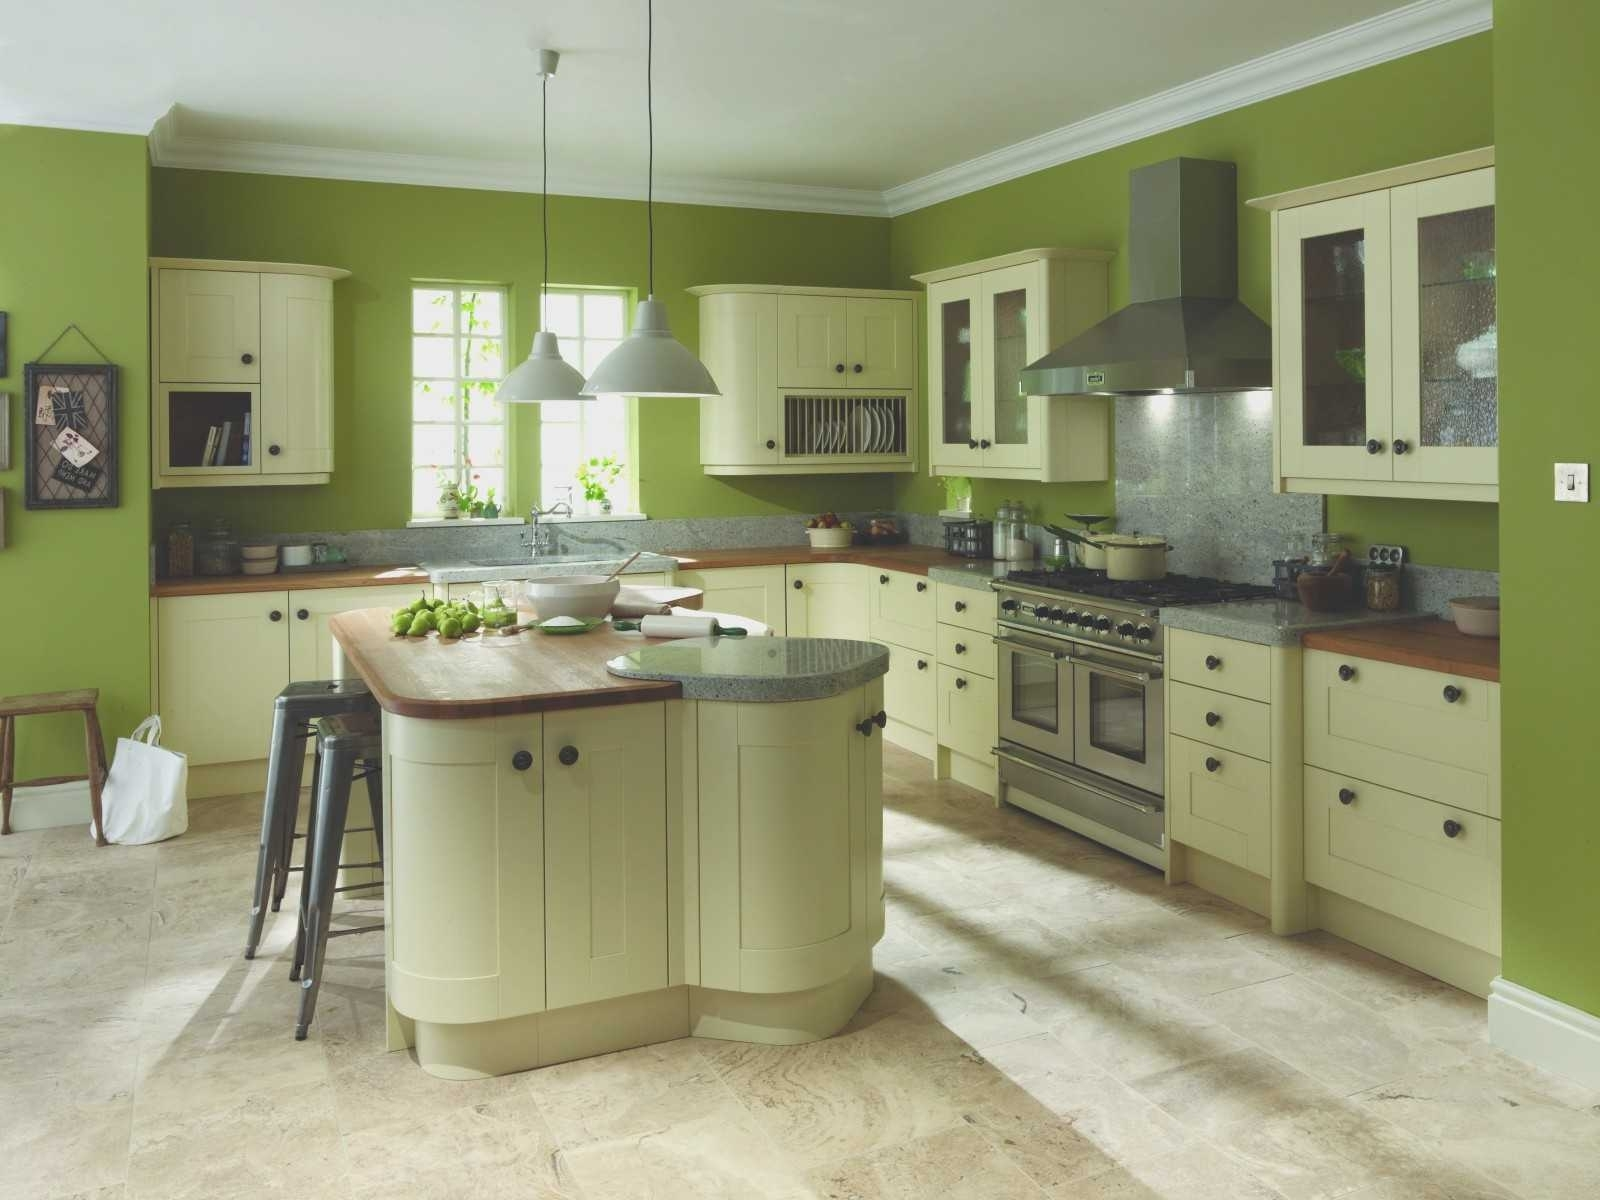 How To Make Olive Green Paint